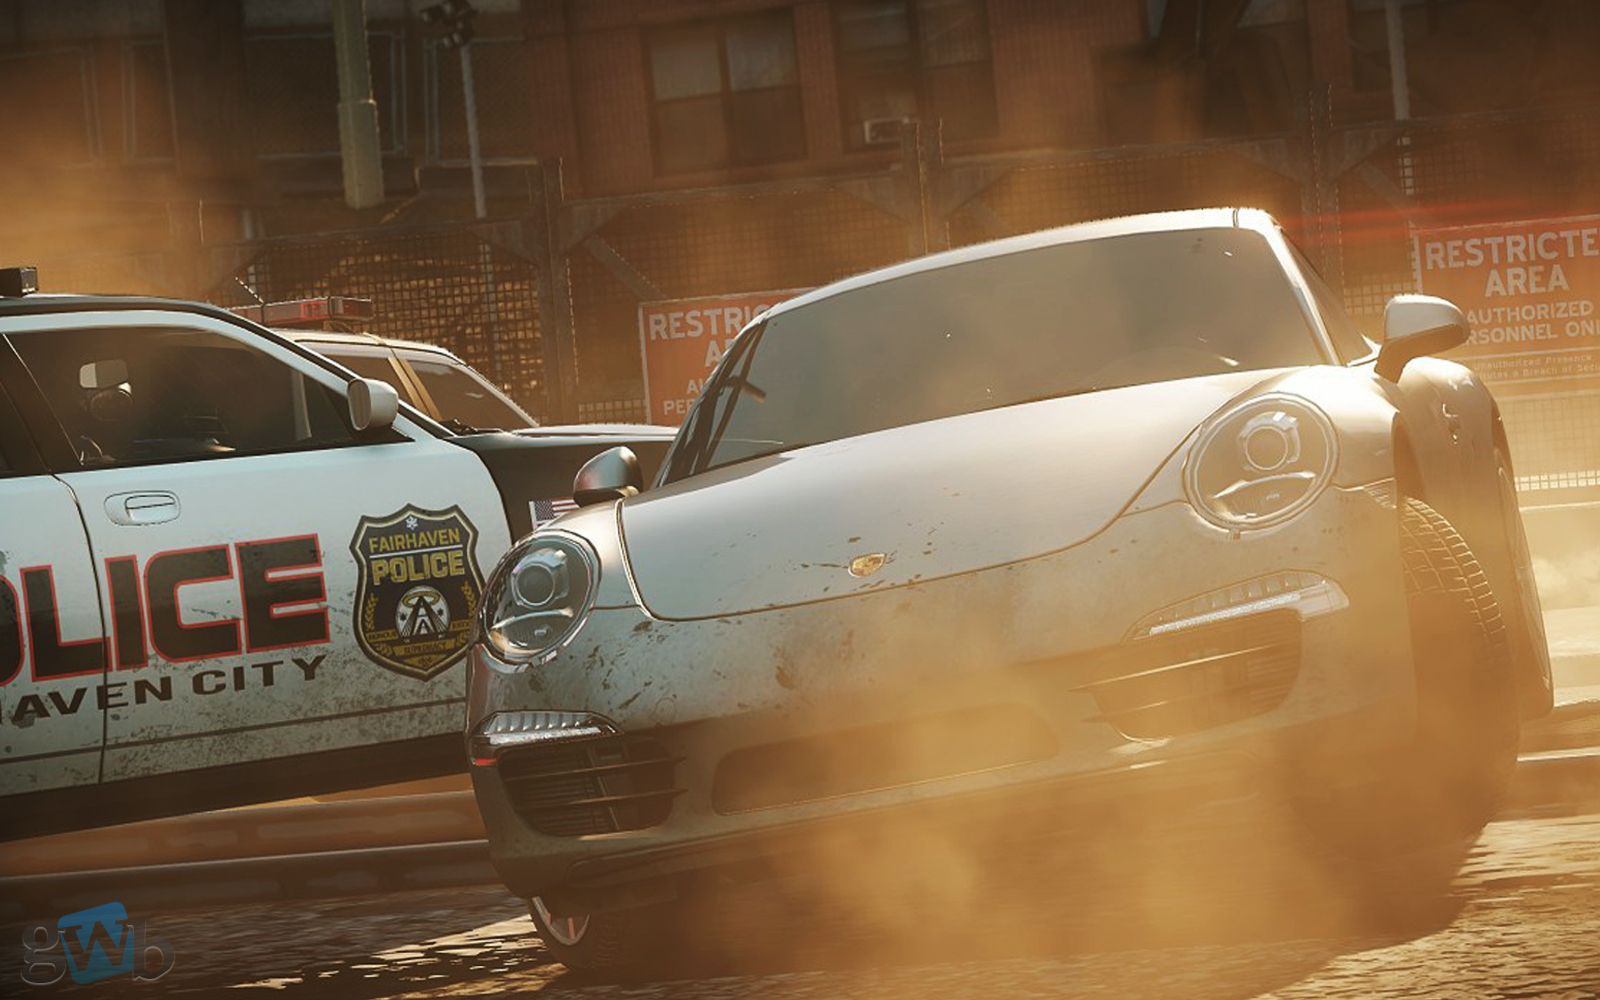 http://4.bp.blogspot.com/-A_6aYCO7ML8/T9J7lpIcyuI/AAAAAAAACHg/G1R4DLsSQds/s1600/Need_For_Speed_Most_Wanted_2012_Game_HD_Wallpaper-gWb.jpg